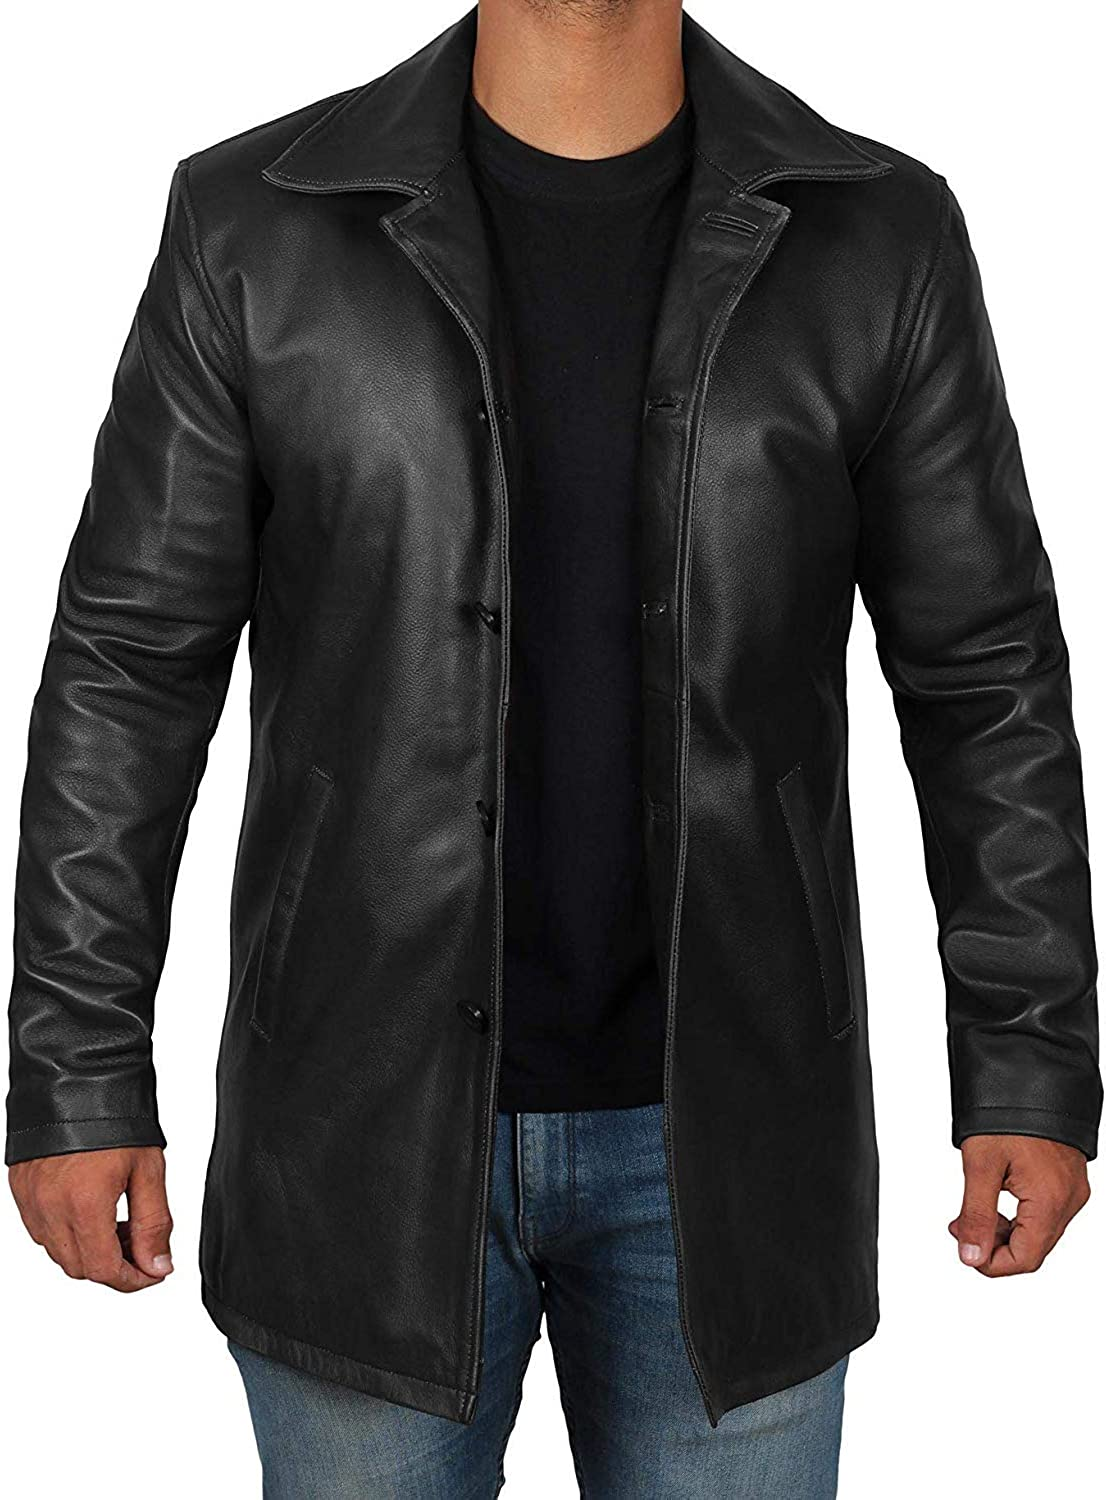 Brown Leather Jacket Men half Selling and selling - fo Natural Jackets Distressed